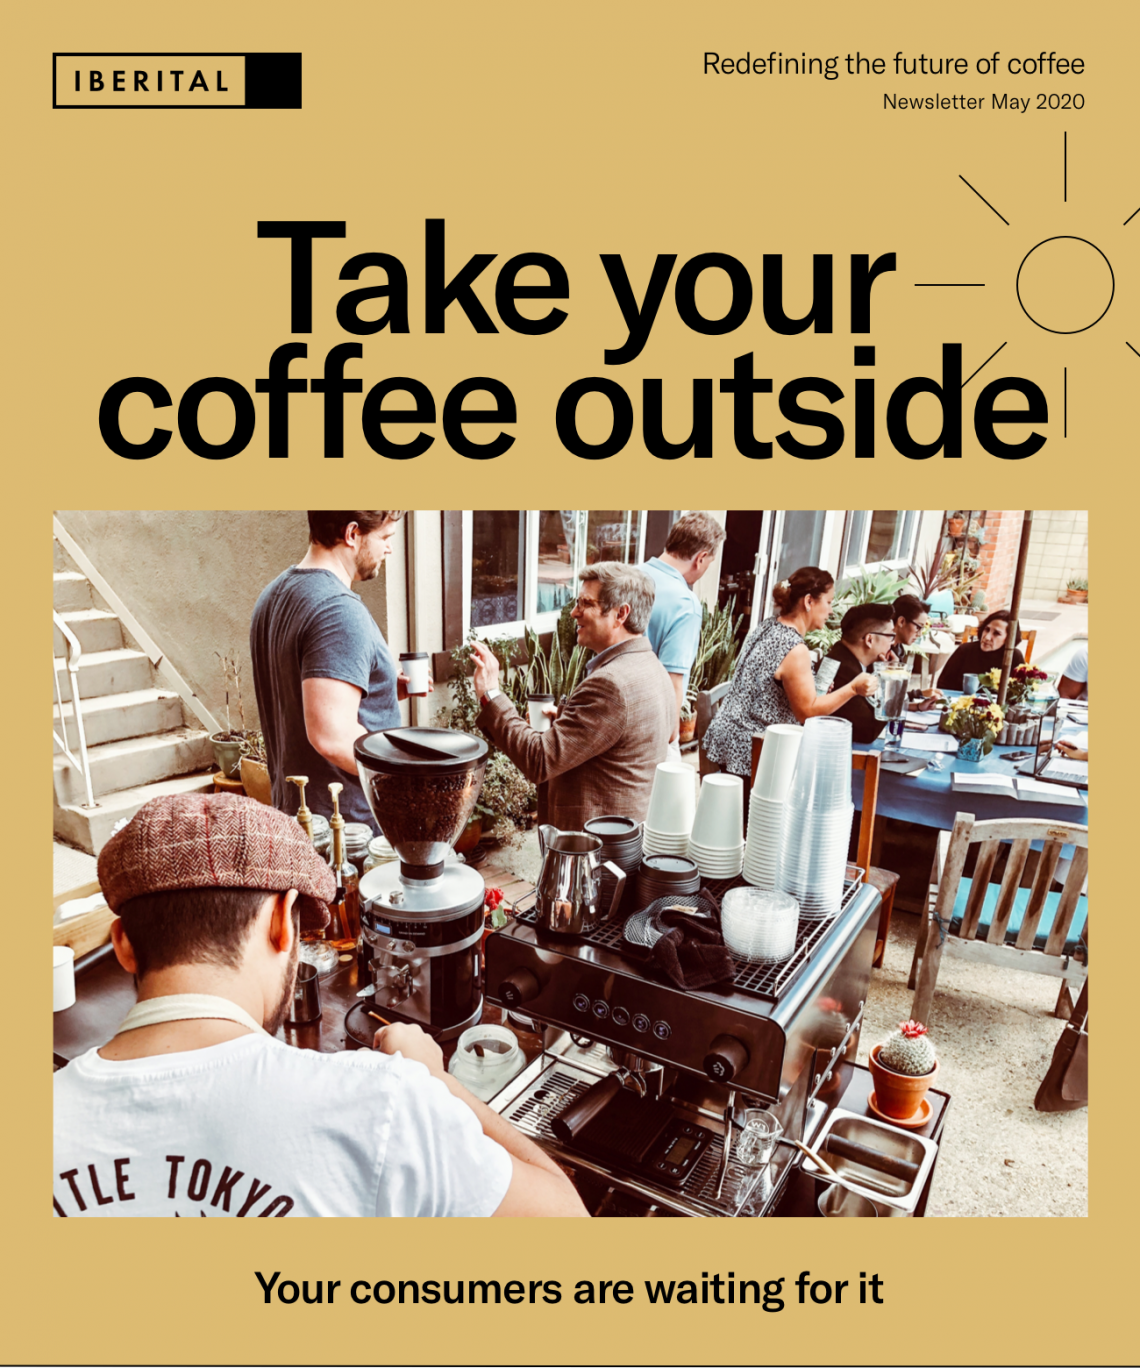 bring your coffee outdoors